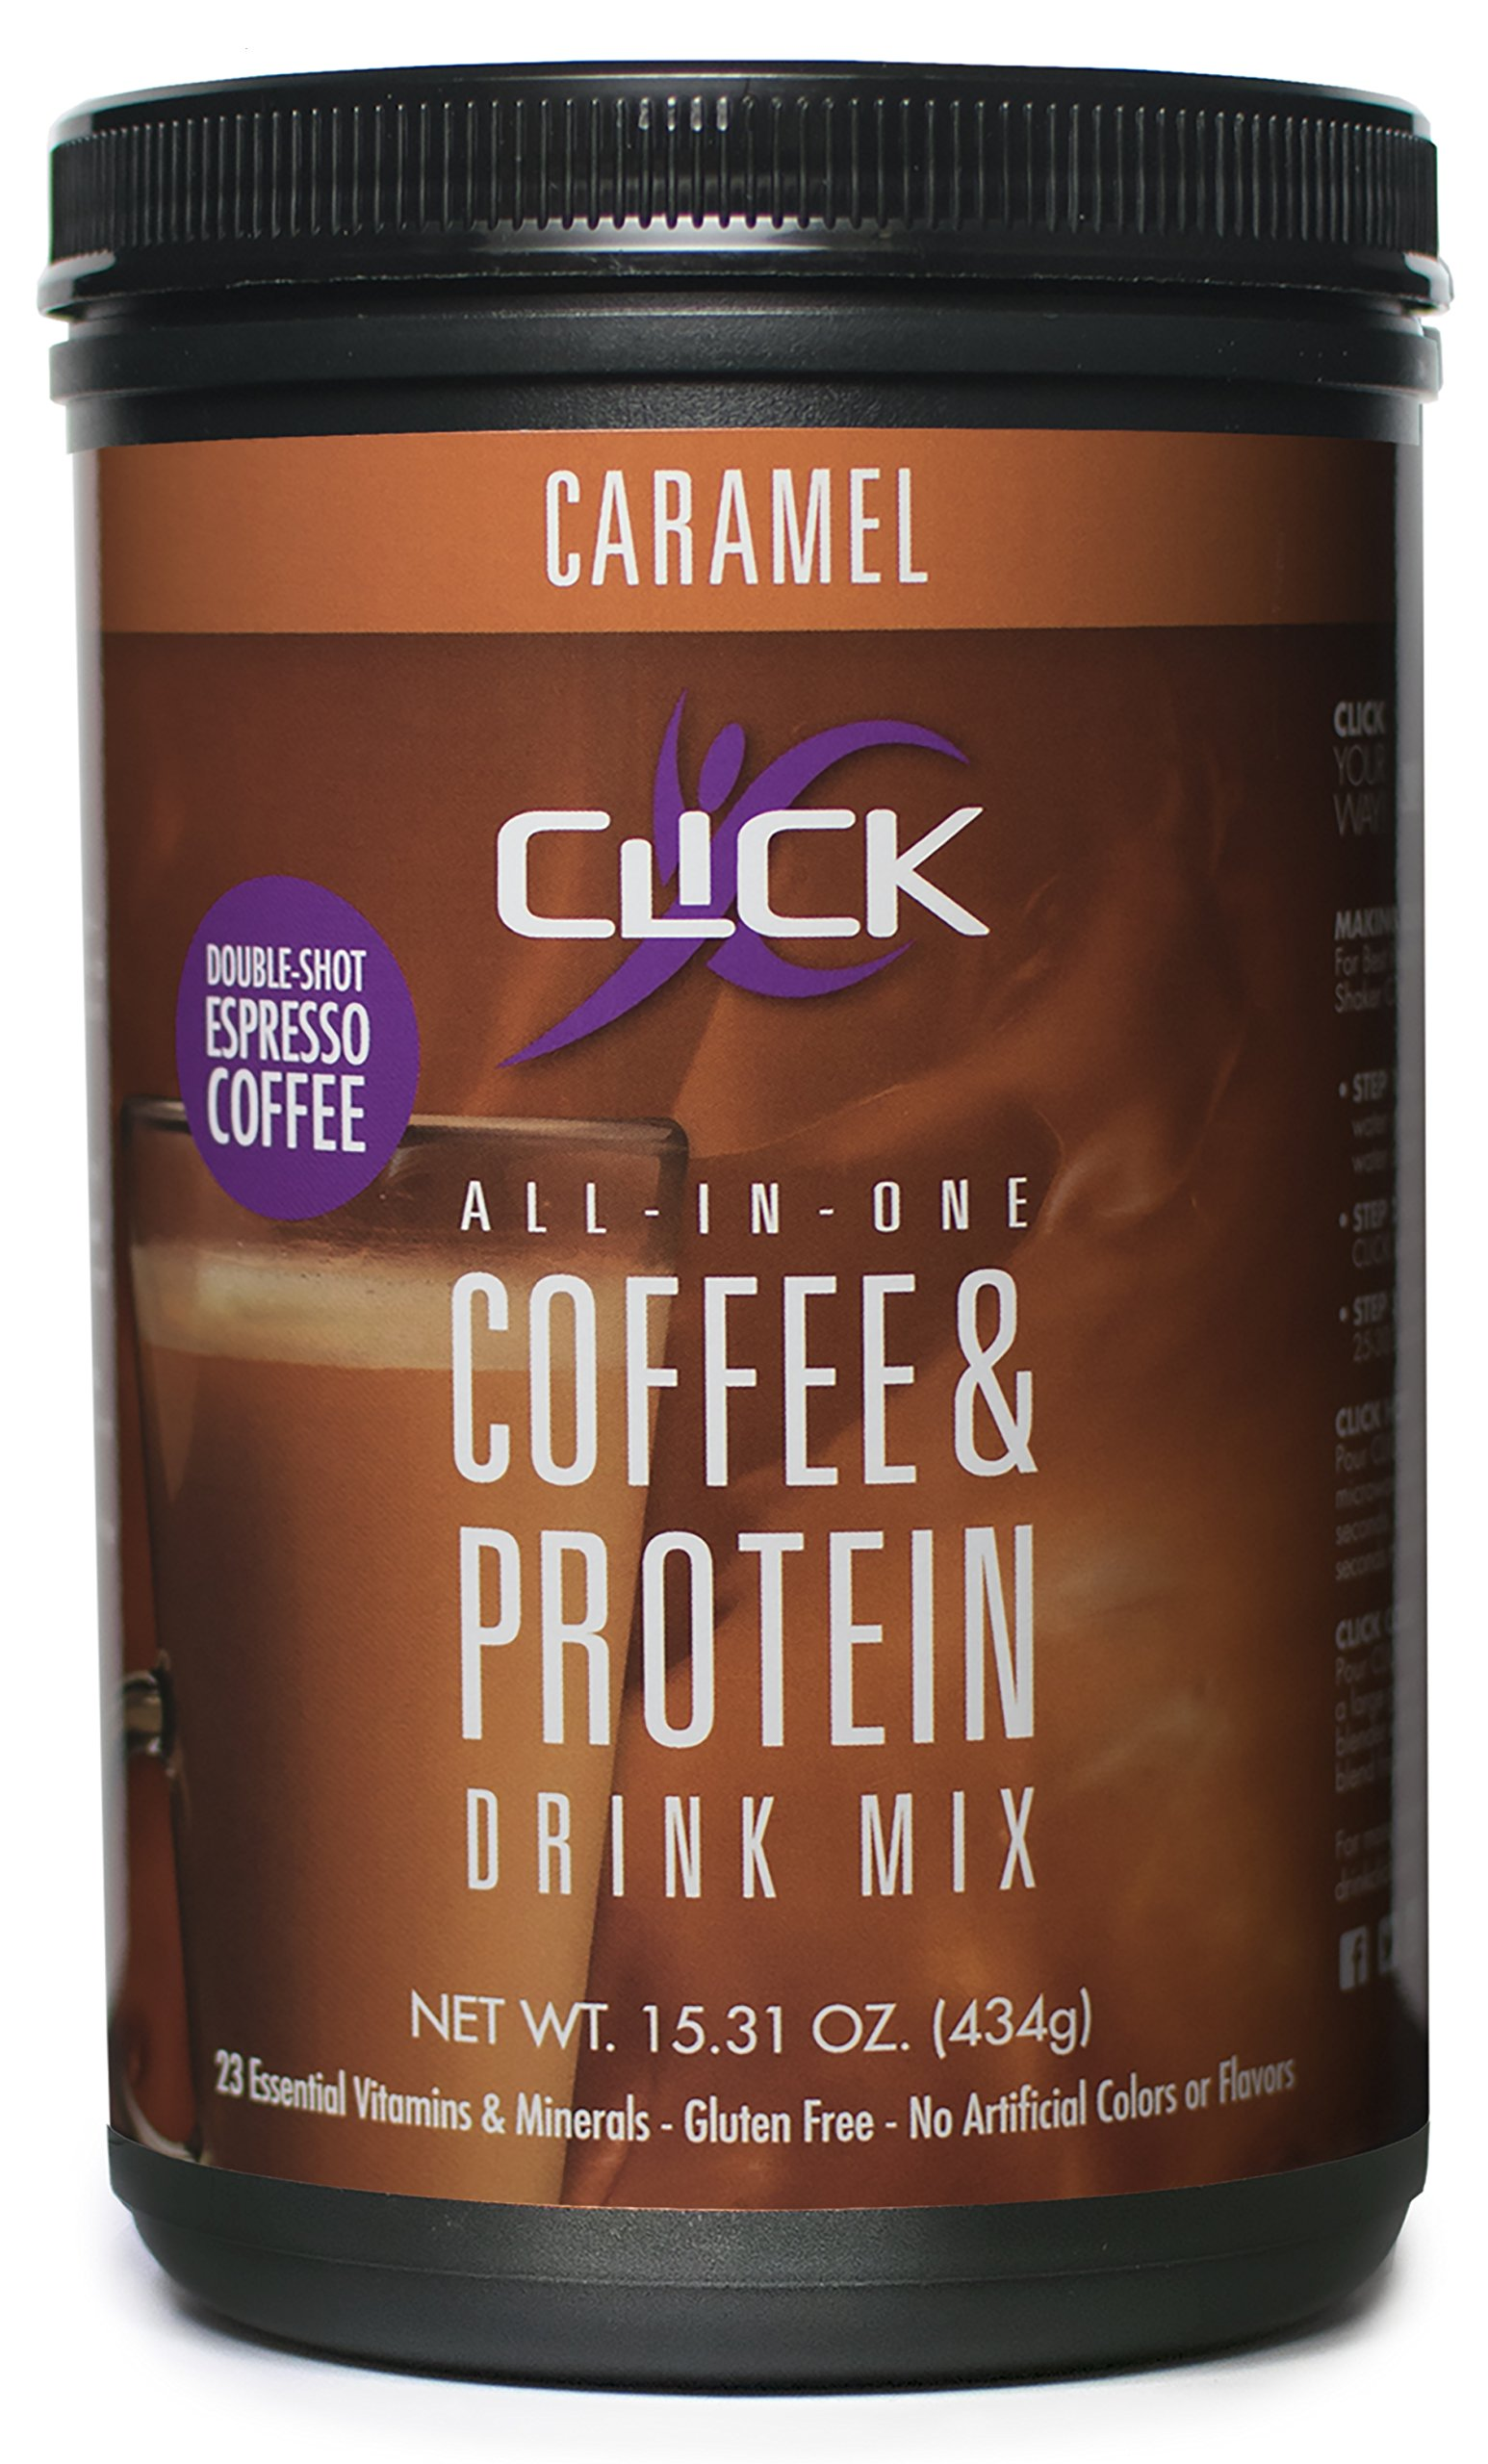 Amazon.com: CLICK Coffee Protein | Protein & Real Coffee, All-In-One| Meal Replacement